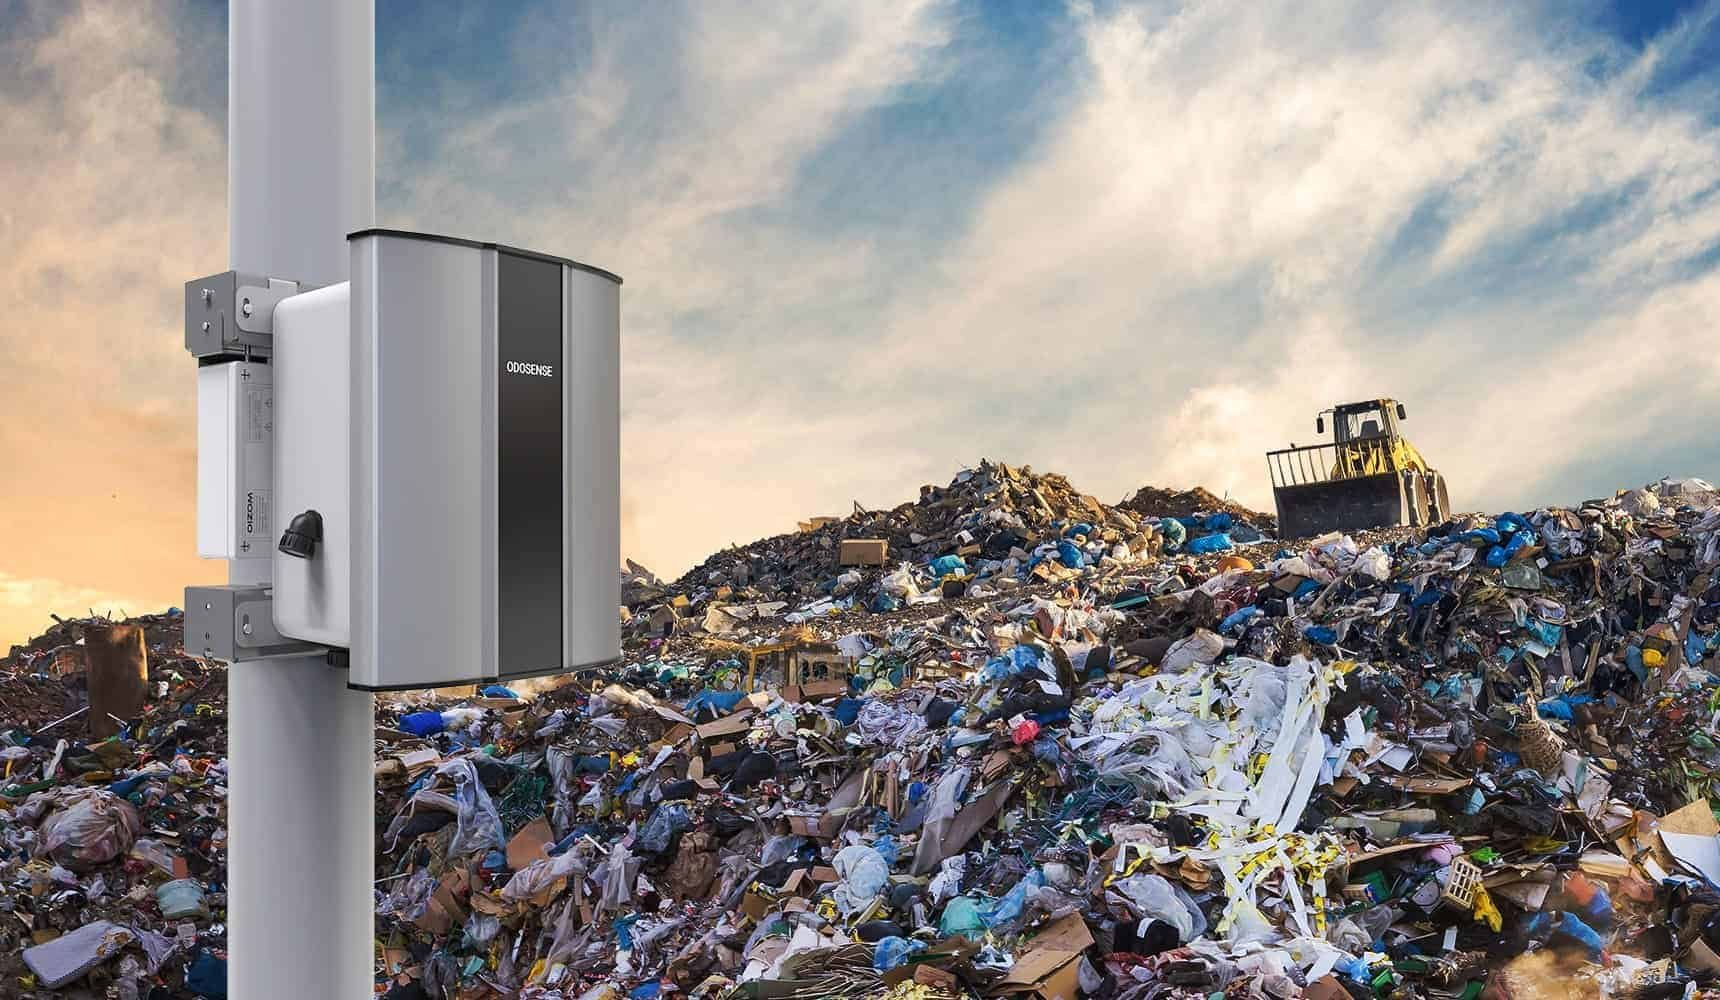 Odosense e nose-based Odour Monitoring System can monitor the odor from the landfills and dumpyards in real-time.